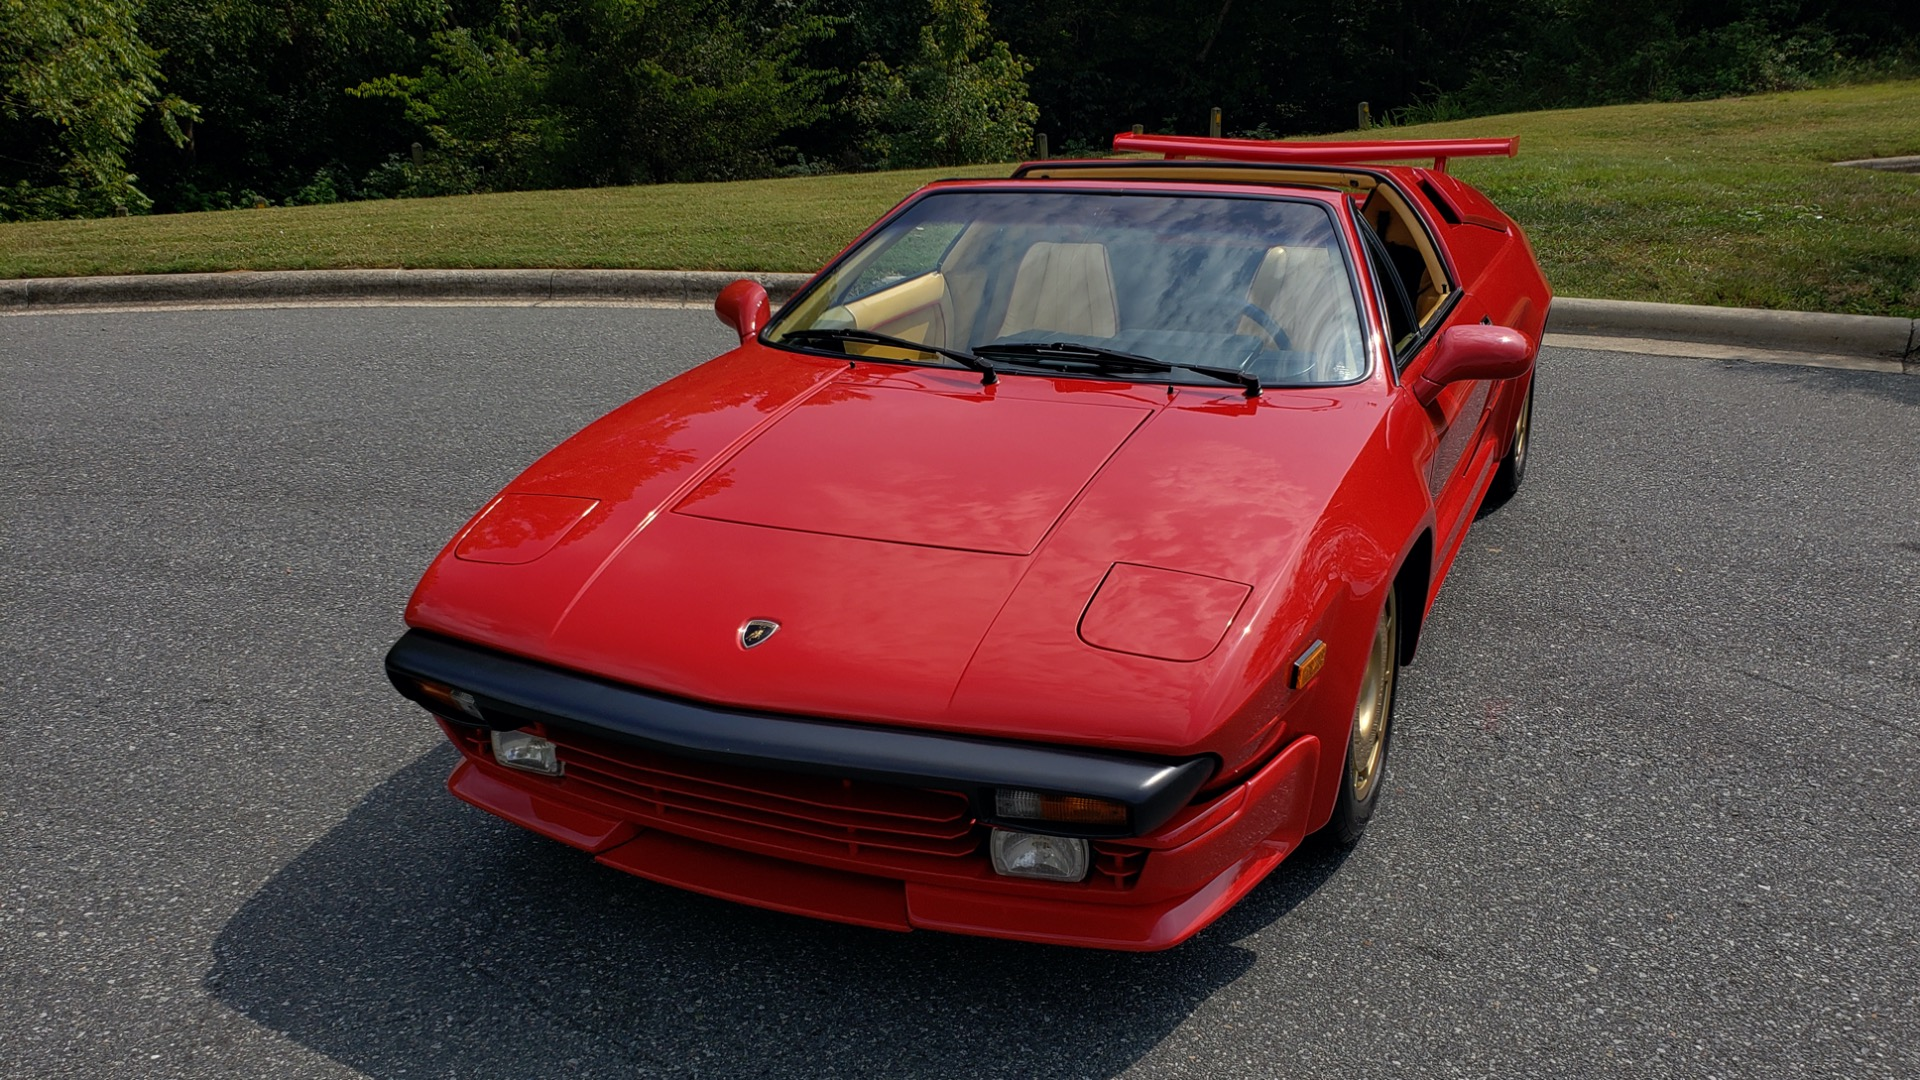 Used 1988 Lamborghini Jalpa 3.5 / 5-Speed Man / Low Miles / Excellent Condition for sale $108,995 at Formula Imports in Charlotte NC 28227 31